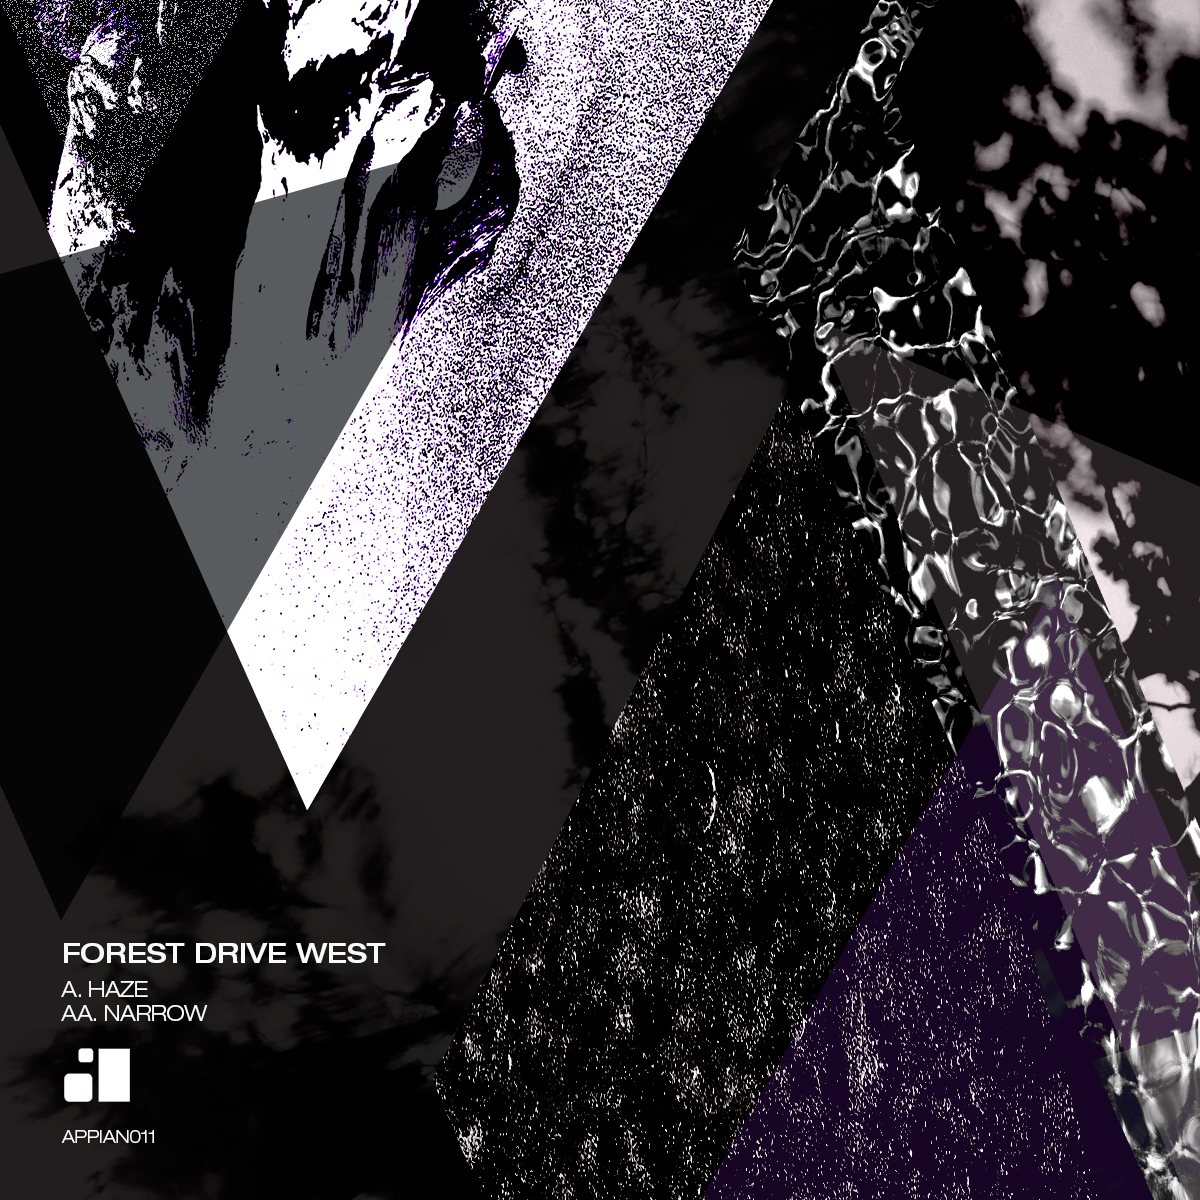 forest-drive-west-ablum-art-techno-record-label-minimal-design-toronto